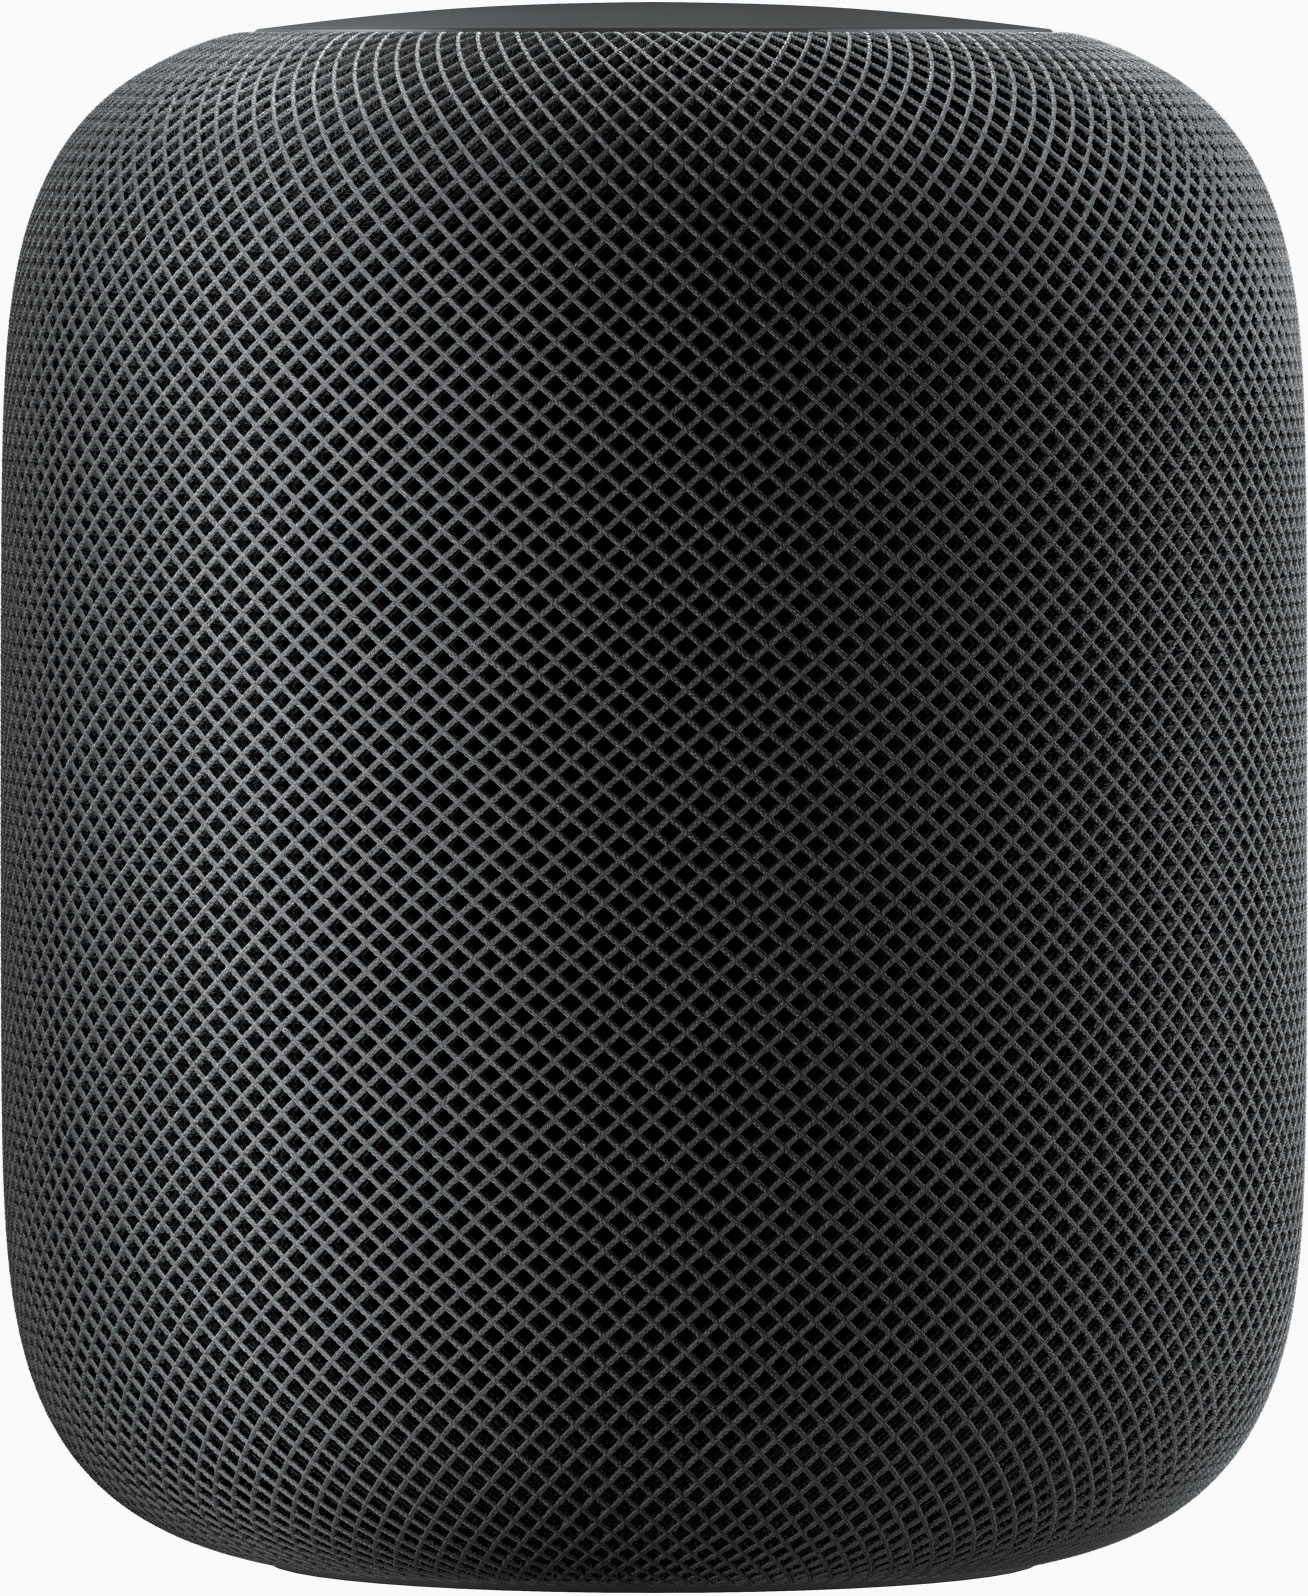 HomePod en color negro